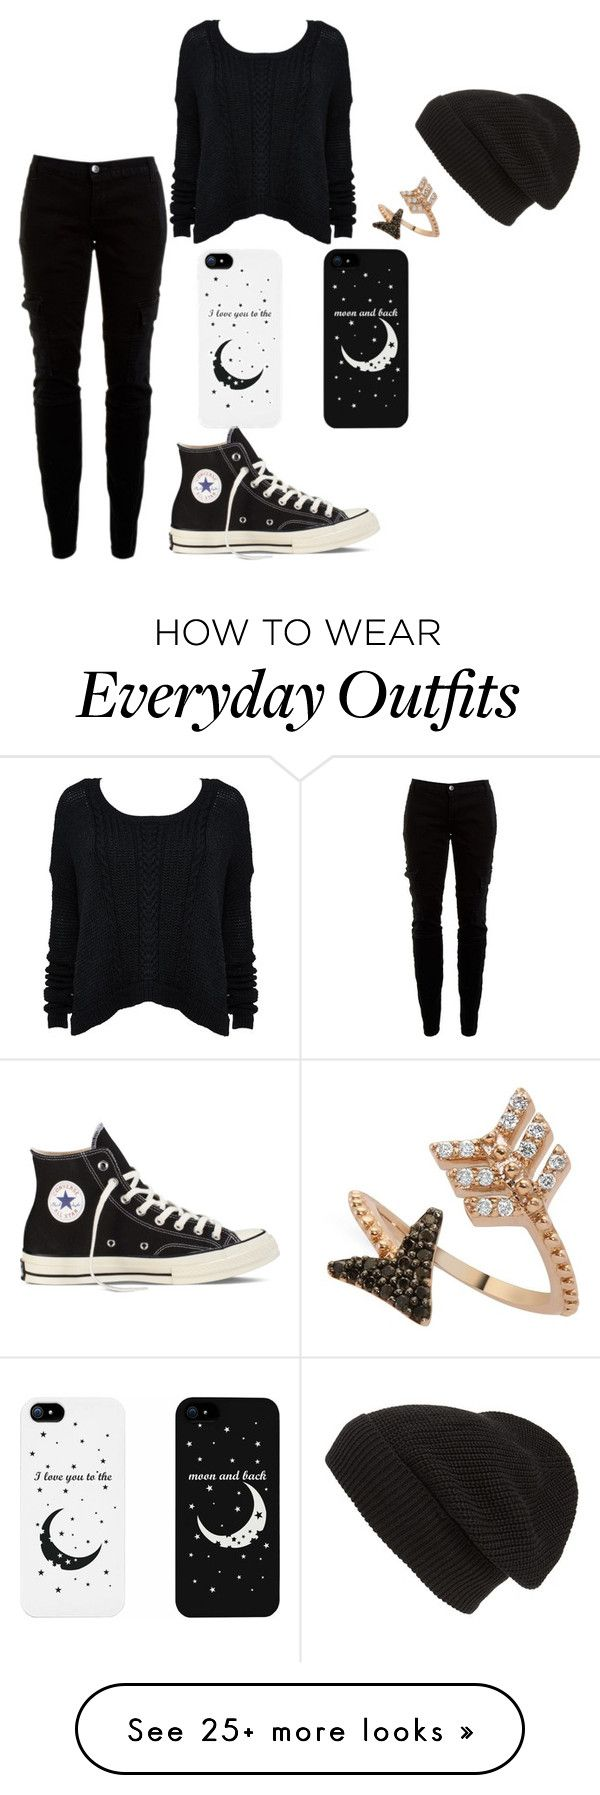 """everyday outfit"" by pinklovebooks on Polyvore featuring Phase 3, Joie, Bee Goddess, Converse, cute and mine"